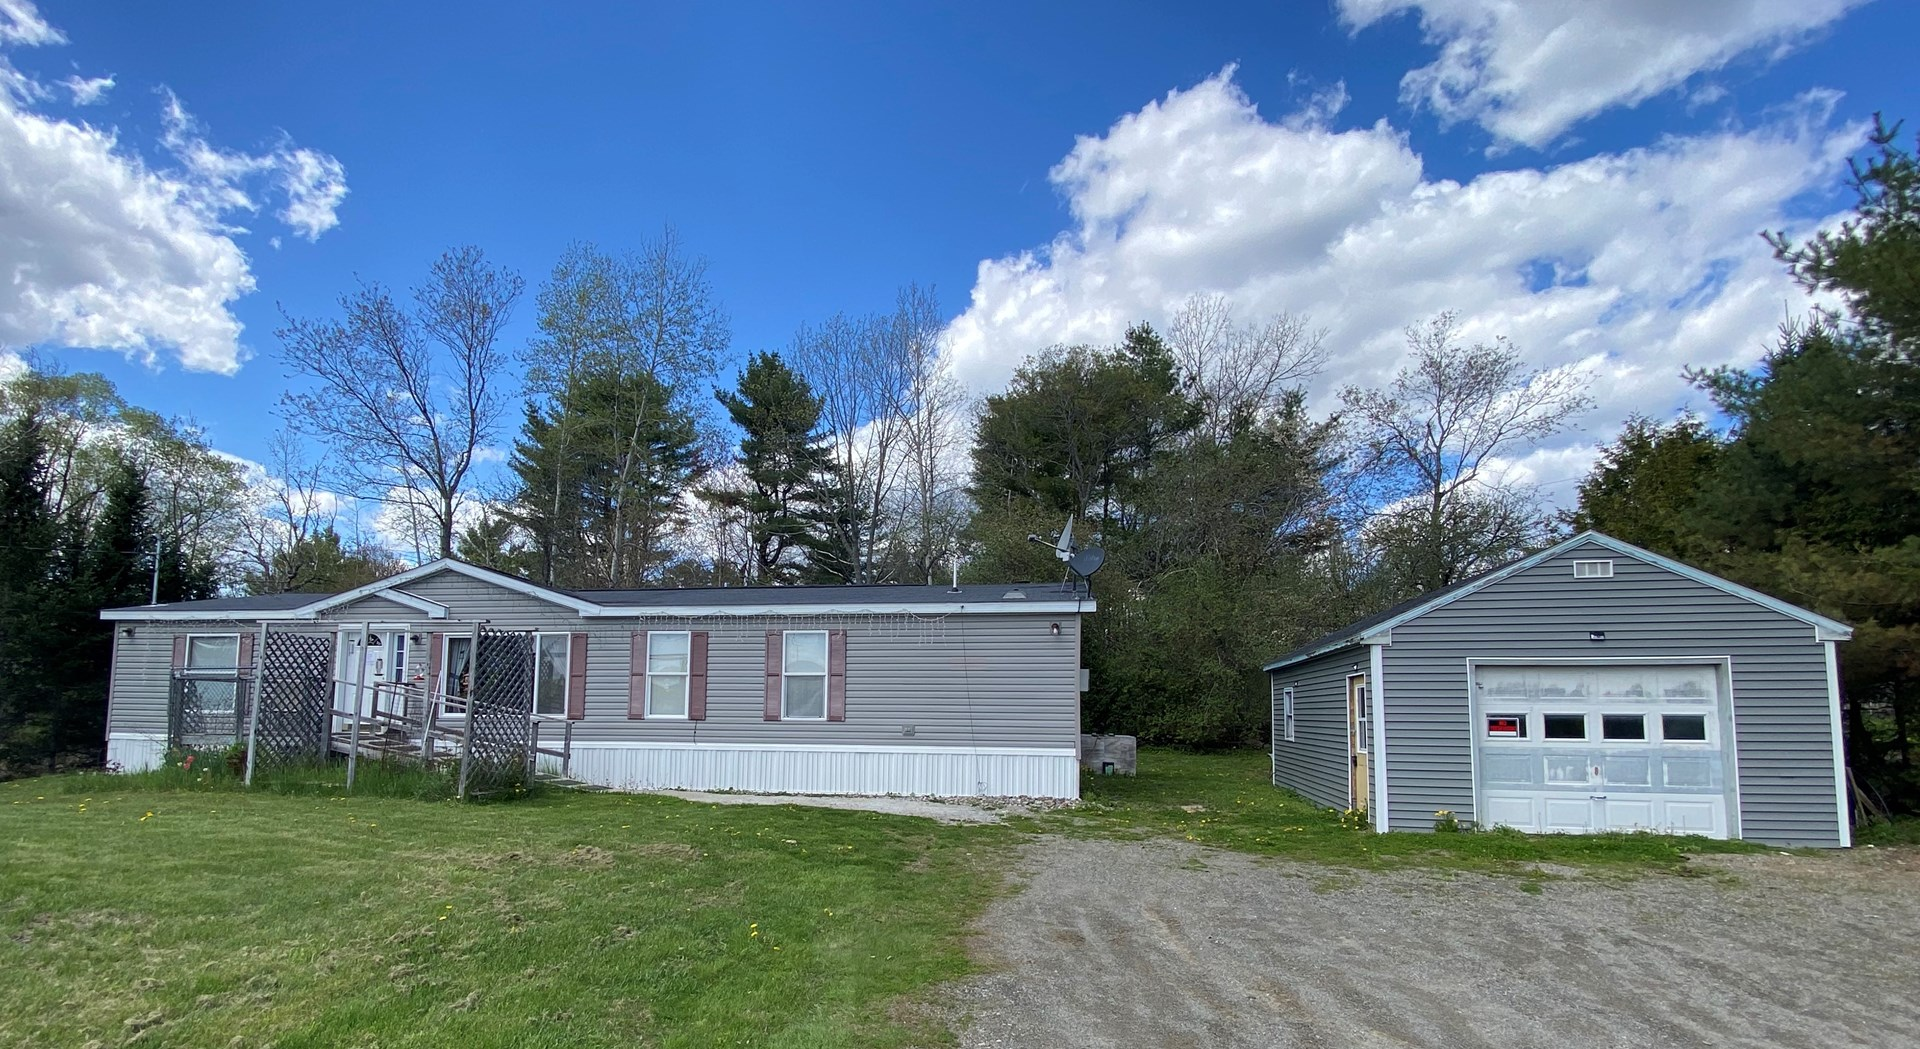 Country Home in Winterport, Maine